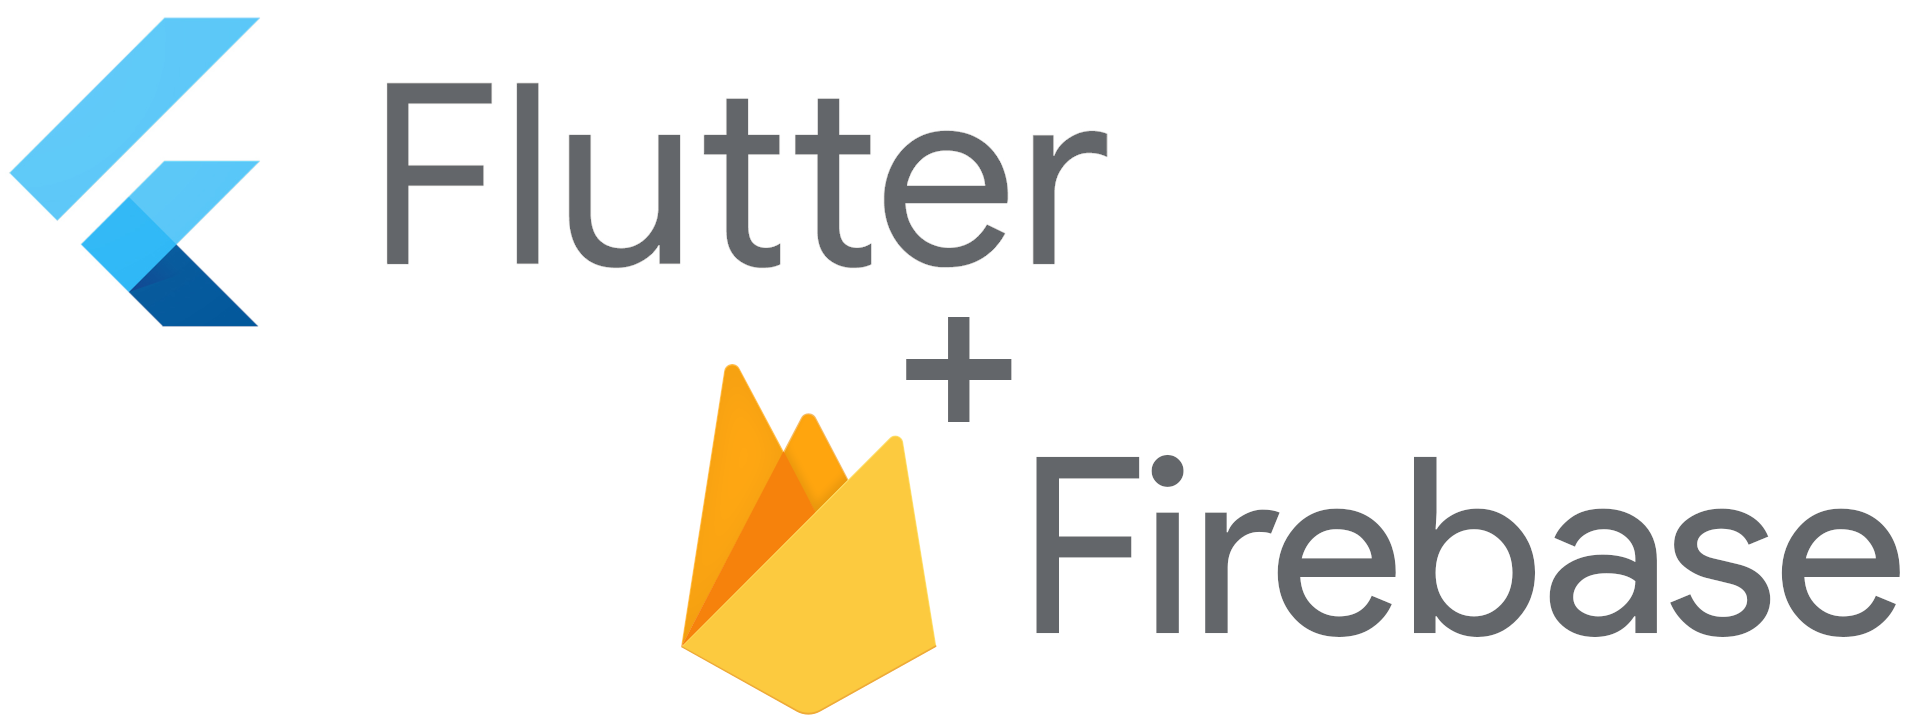 Using Firebase's Cloud Firestore in Flutter - Heartbeat